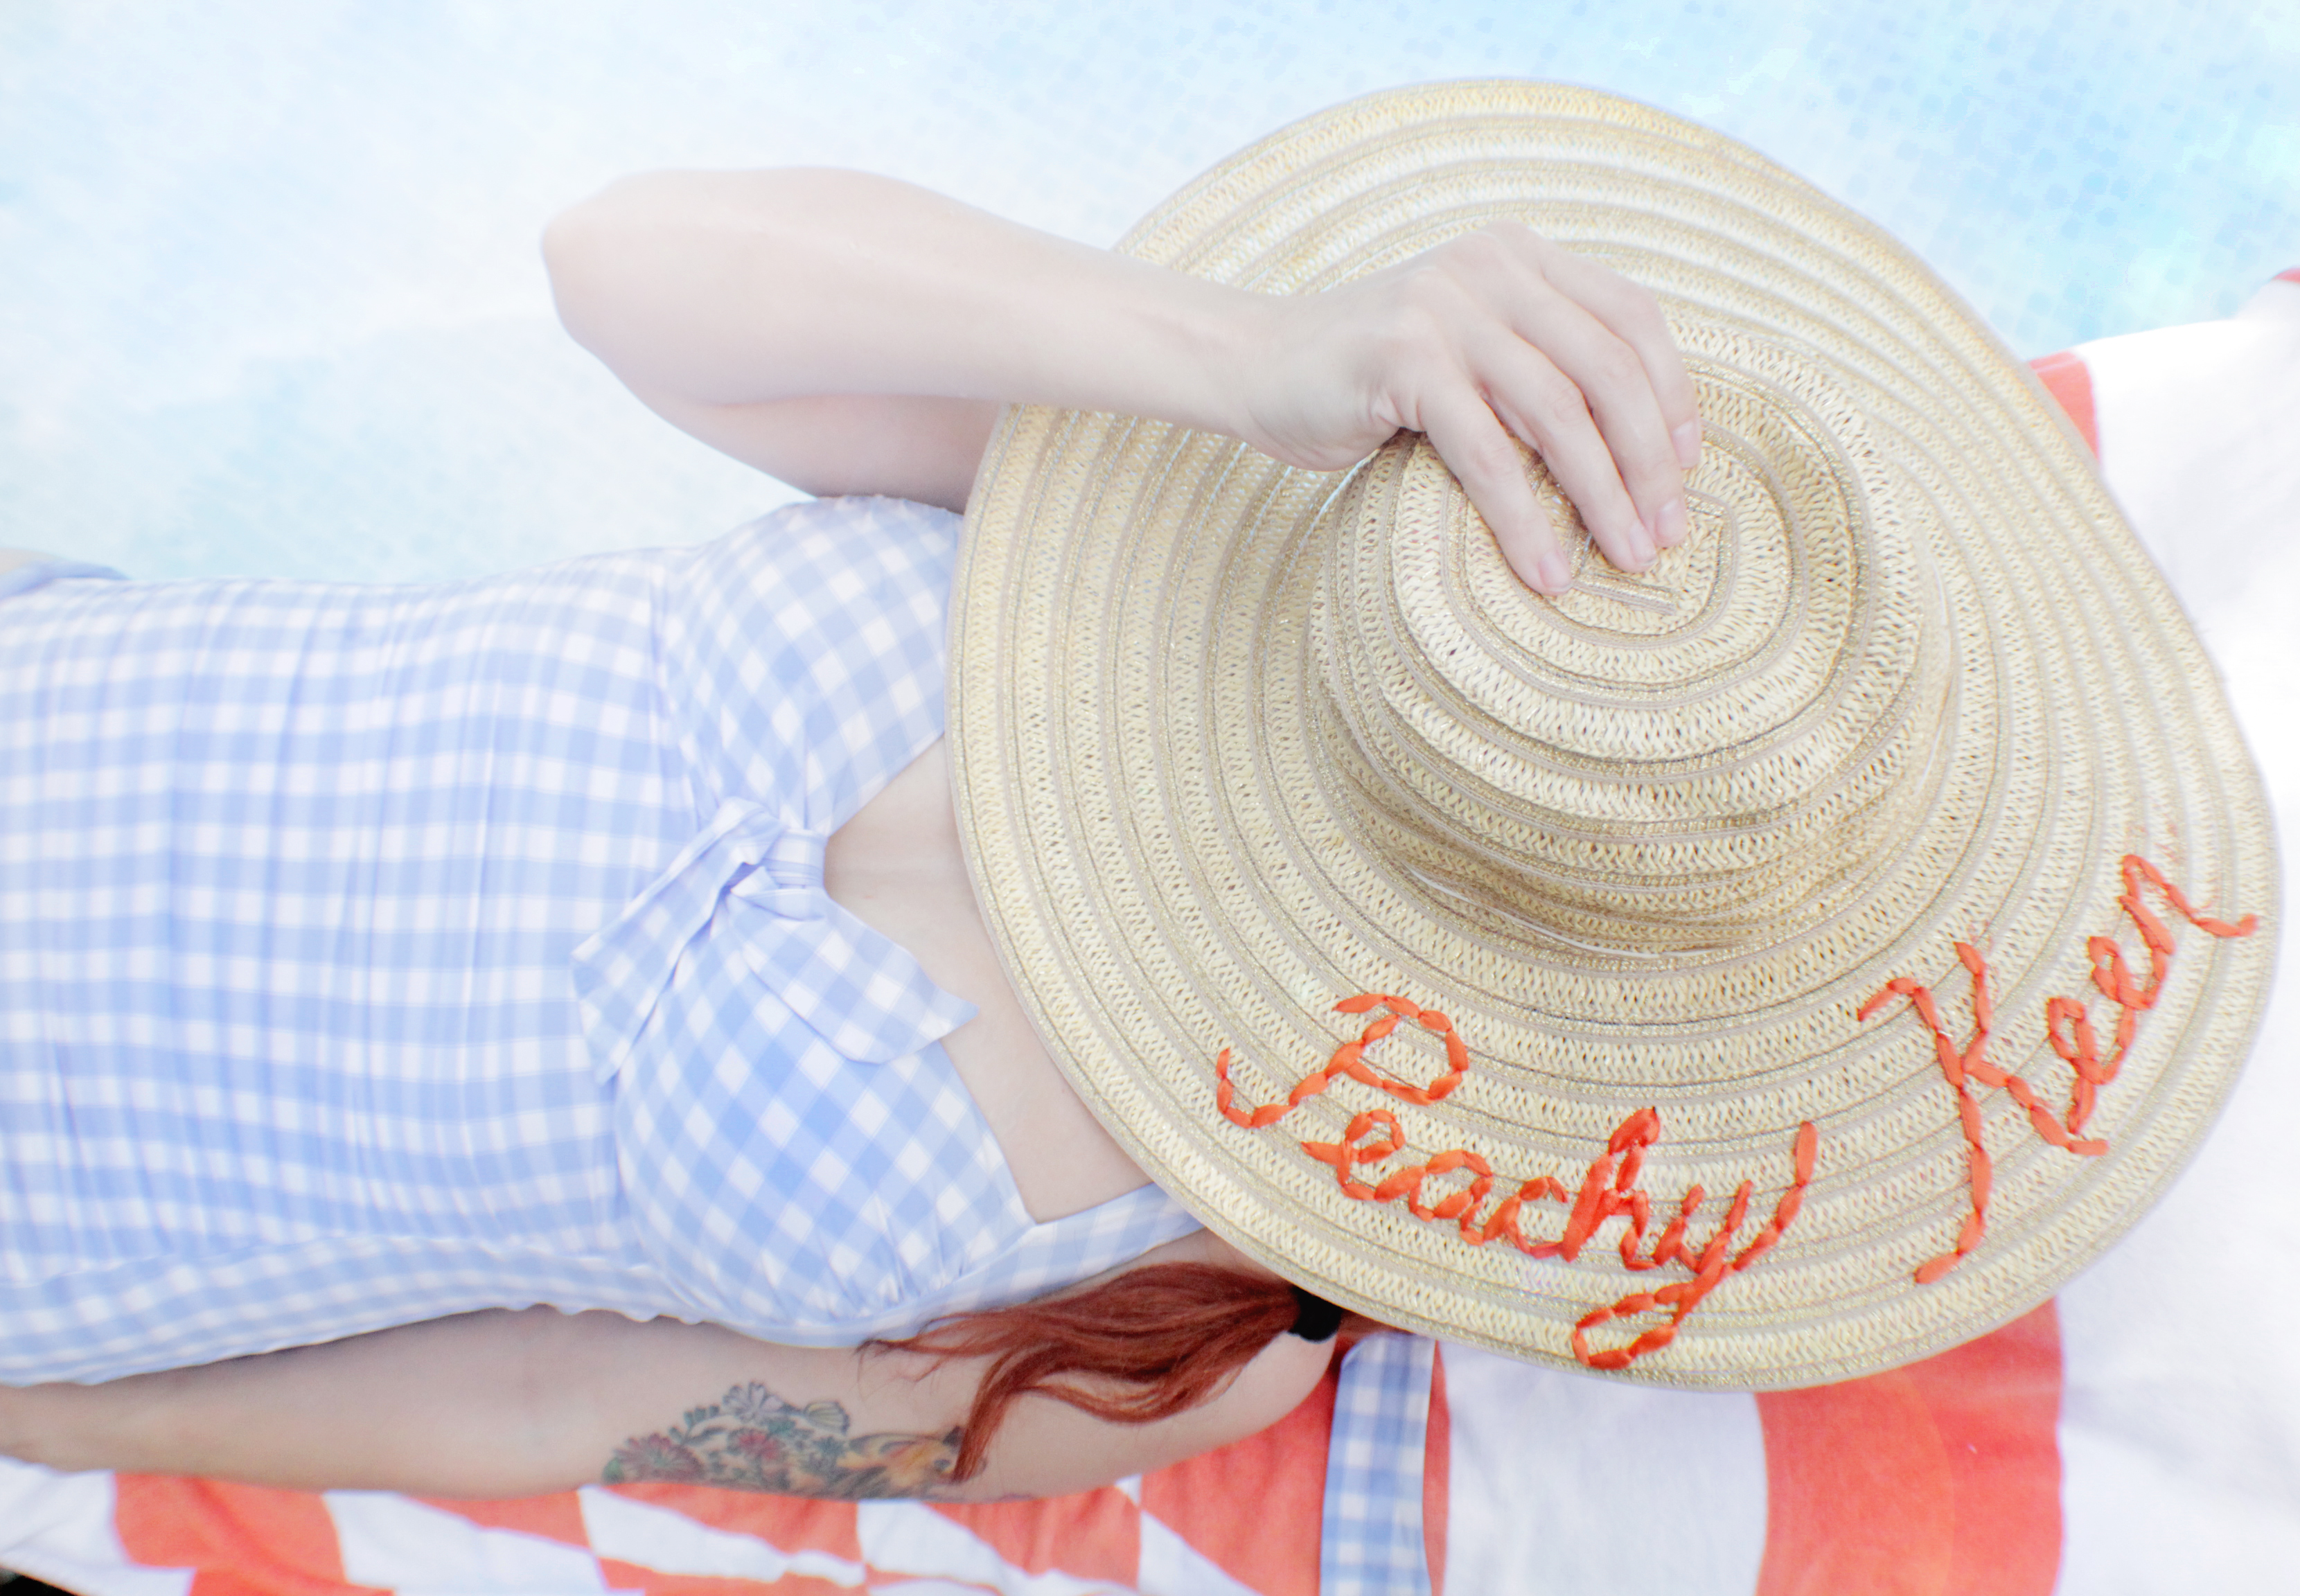 Darling hat DIY for summer!